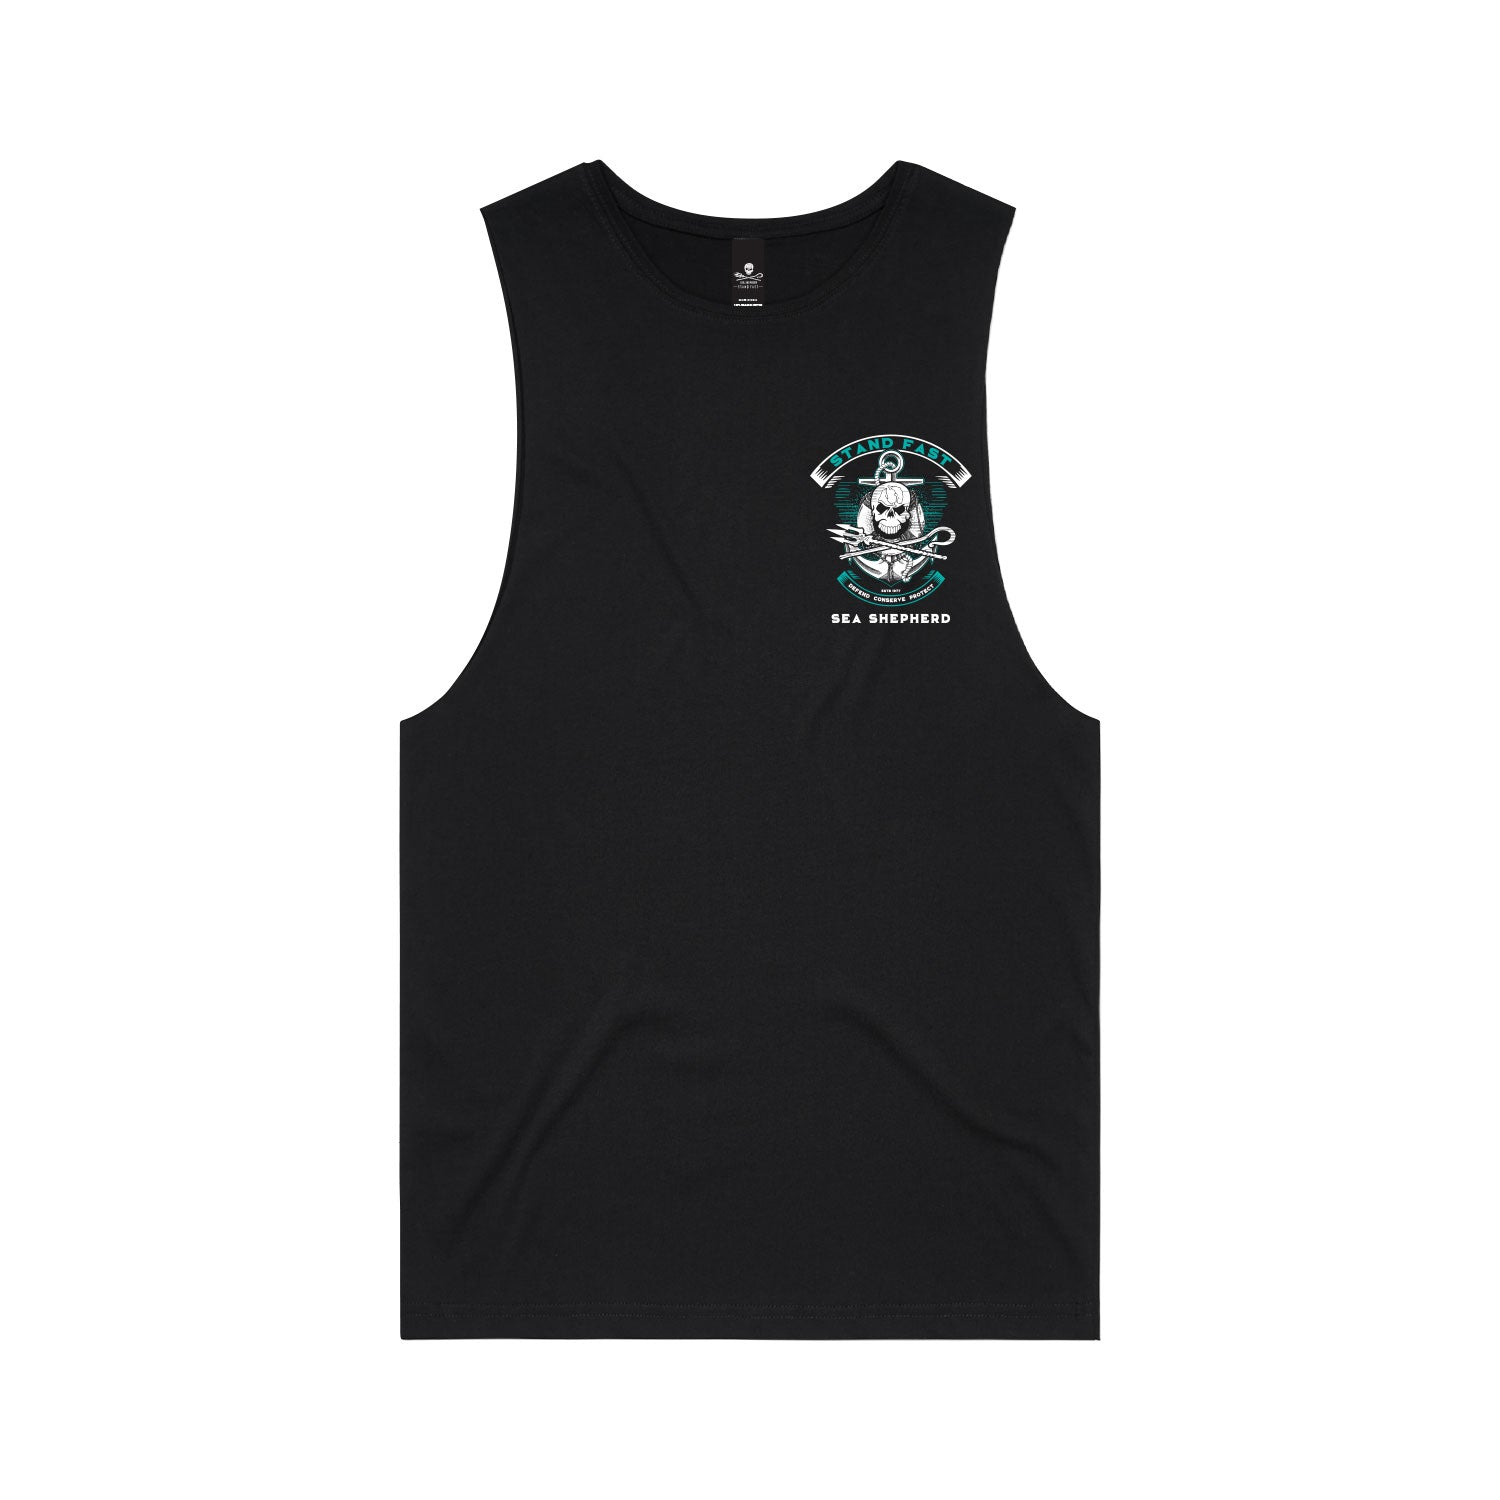 Stand Fast Sea Shepherd Forever Unisex Muscle Tee - Black